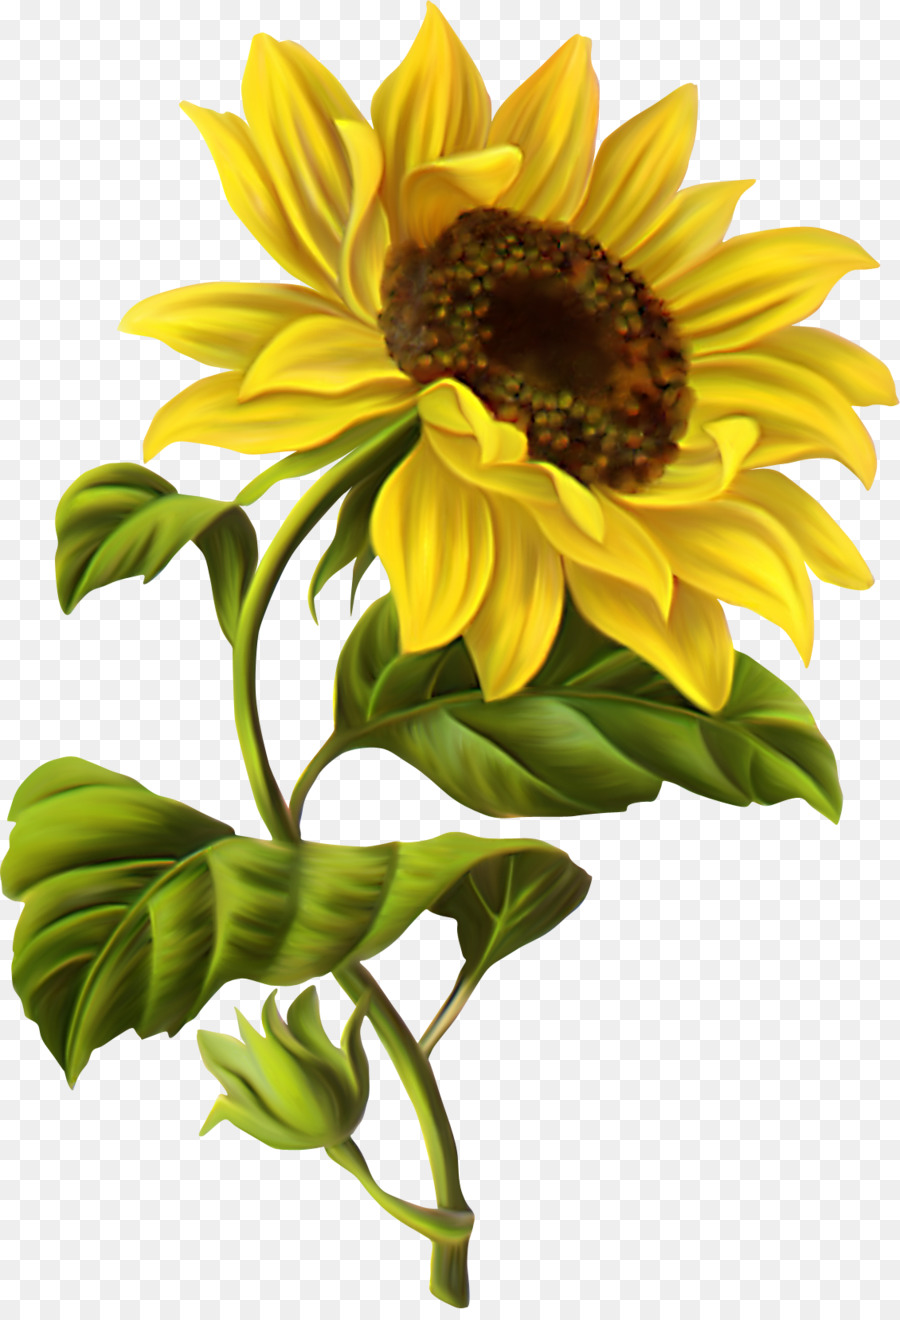 Common Sunflower Png - Common sunflower Drawing Botanical illustration Watercolor ...